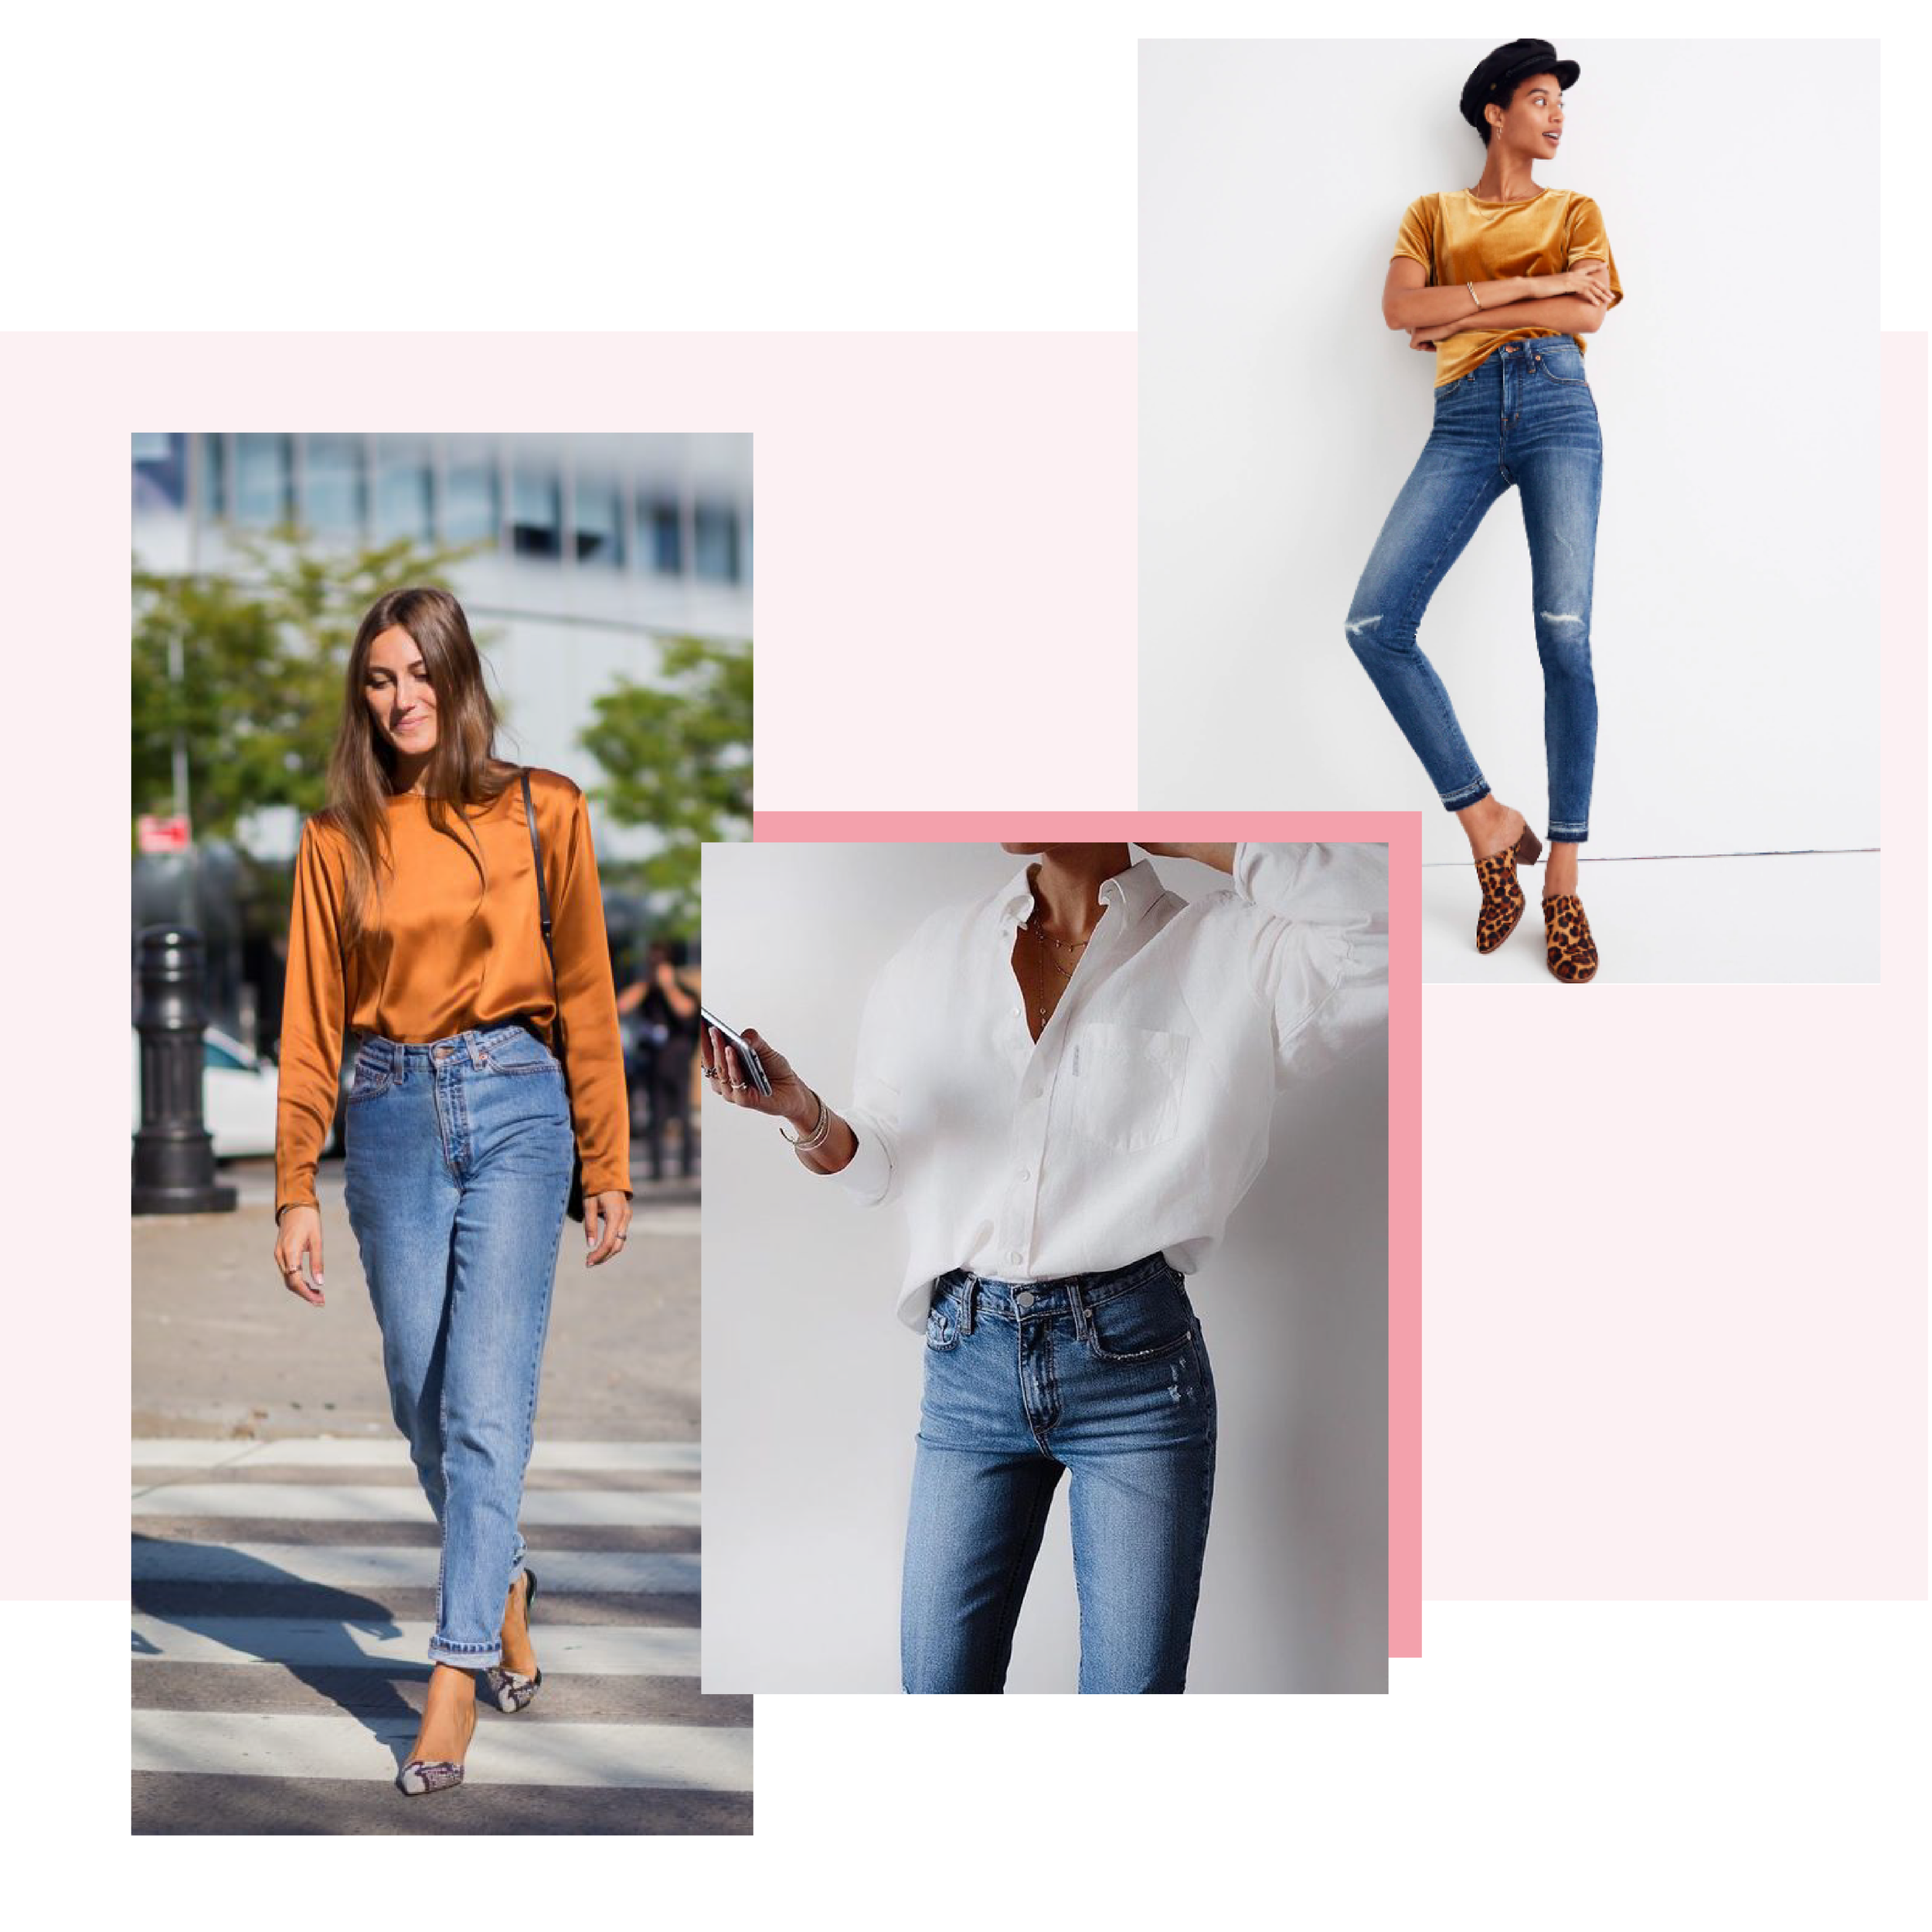 Dress up Your Jeans - Another safe bet? Rock your favourite pair of jeans with a top that makes you feel comfortable and confident. Need some ideas? A crisp button-down will never lead you astray, balance a lady-like blouse with boyish brogues, or throw on a statement sweatshirt for something extra cozy, but cool.